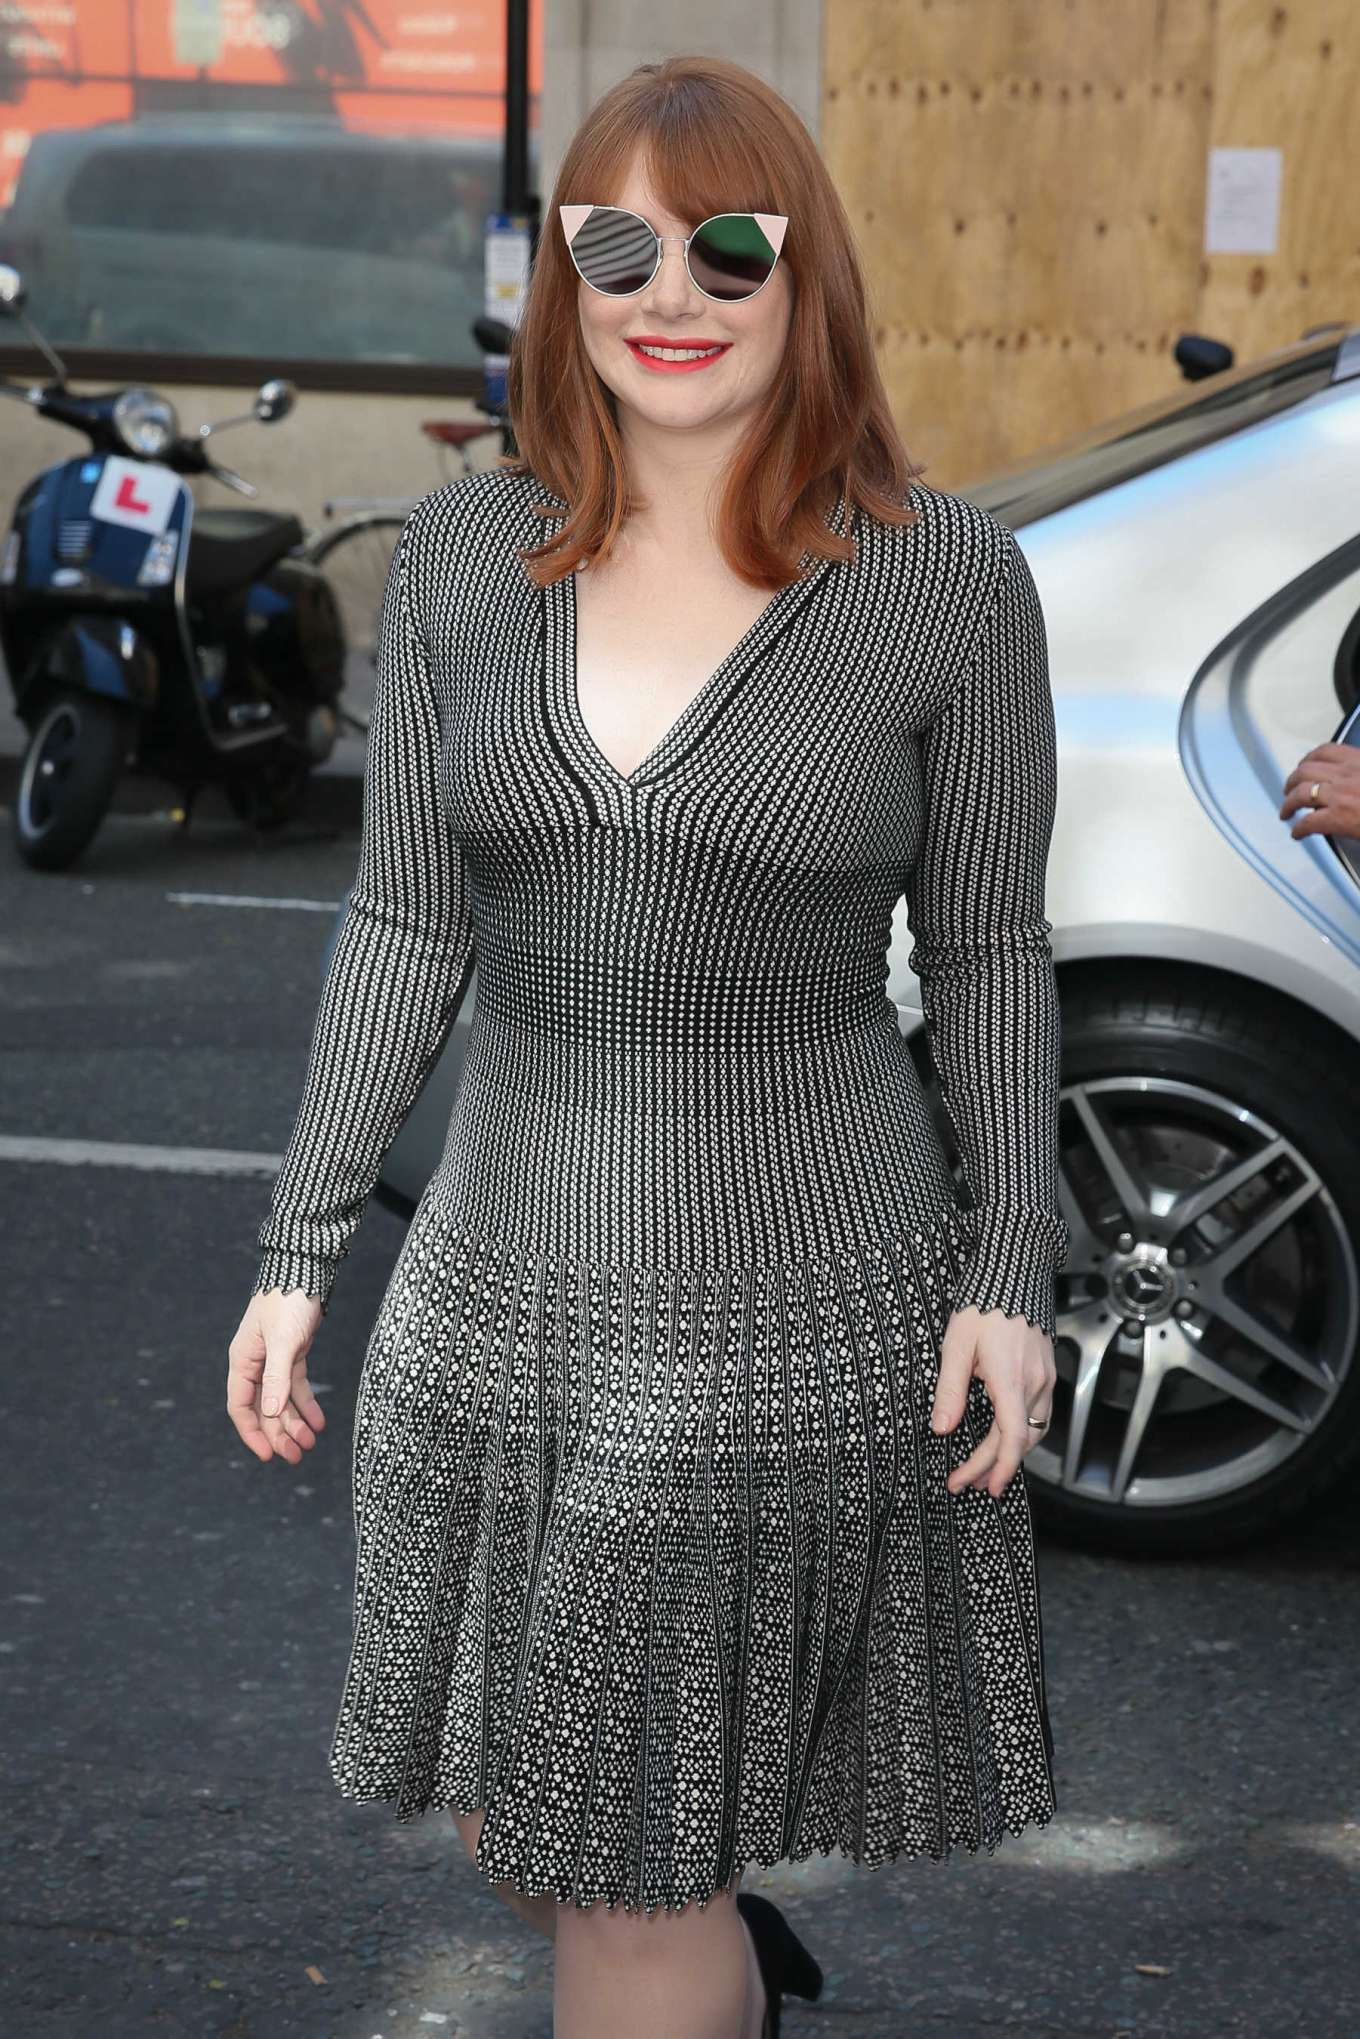 Bryce Dallas Howard 2019 : Bryce Dallas Howard: Out and about in London-20